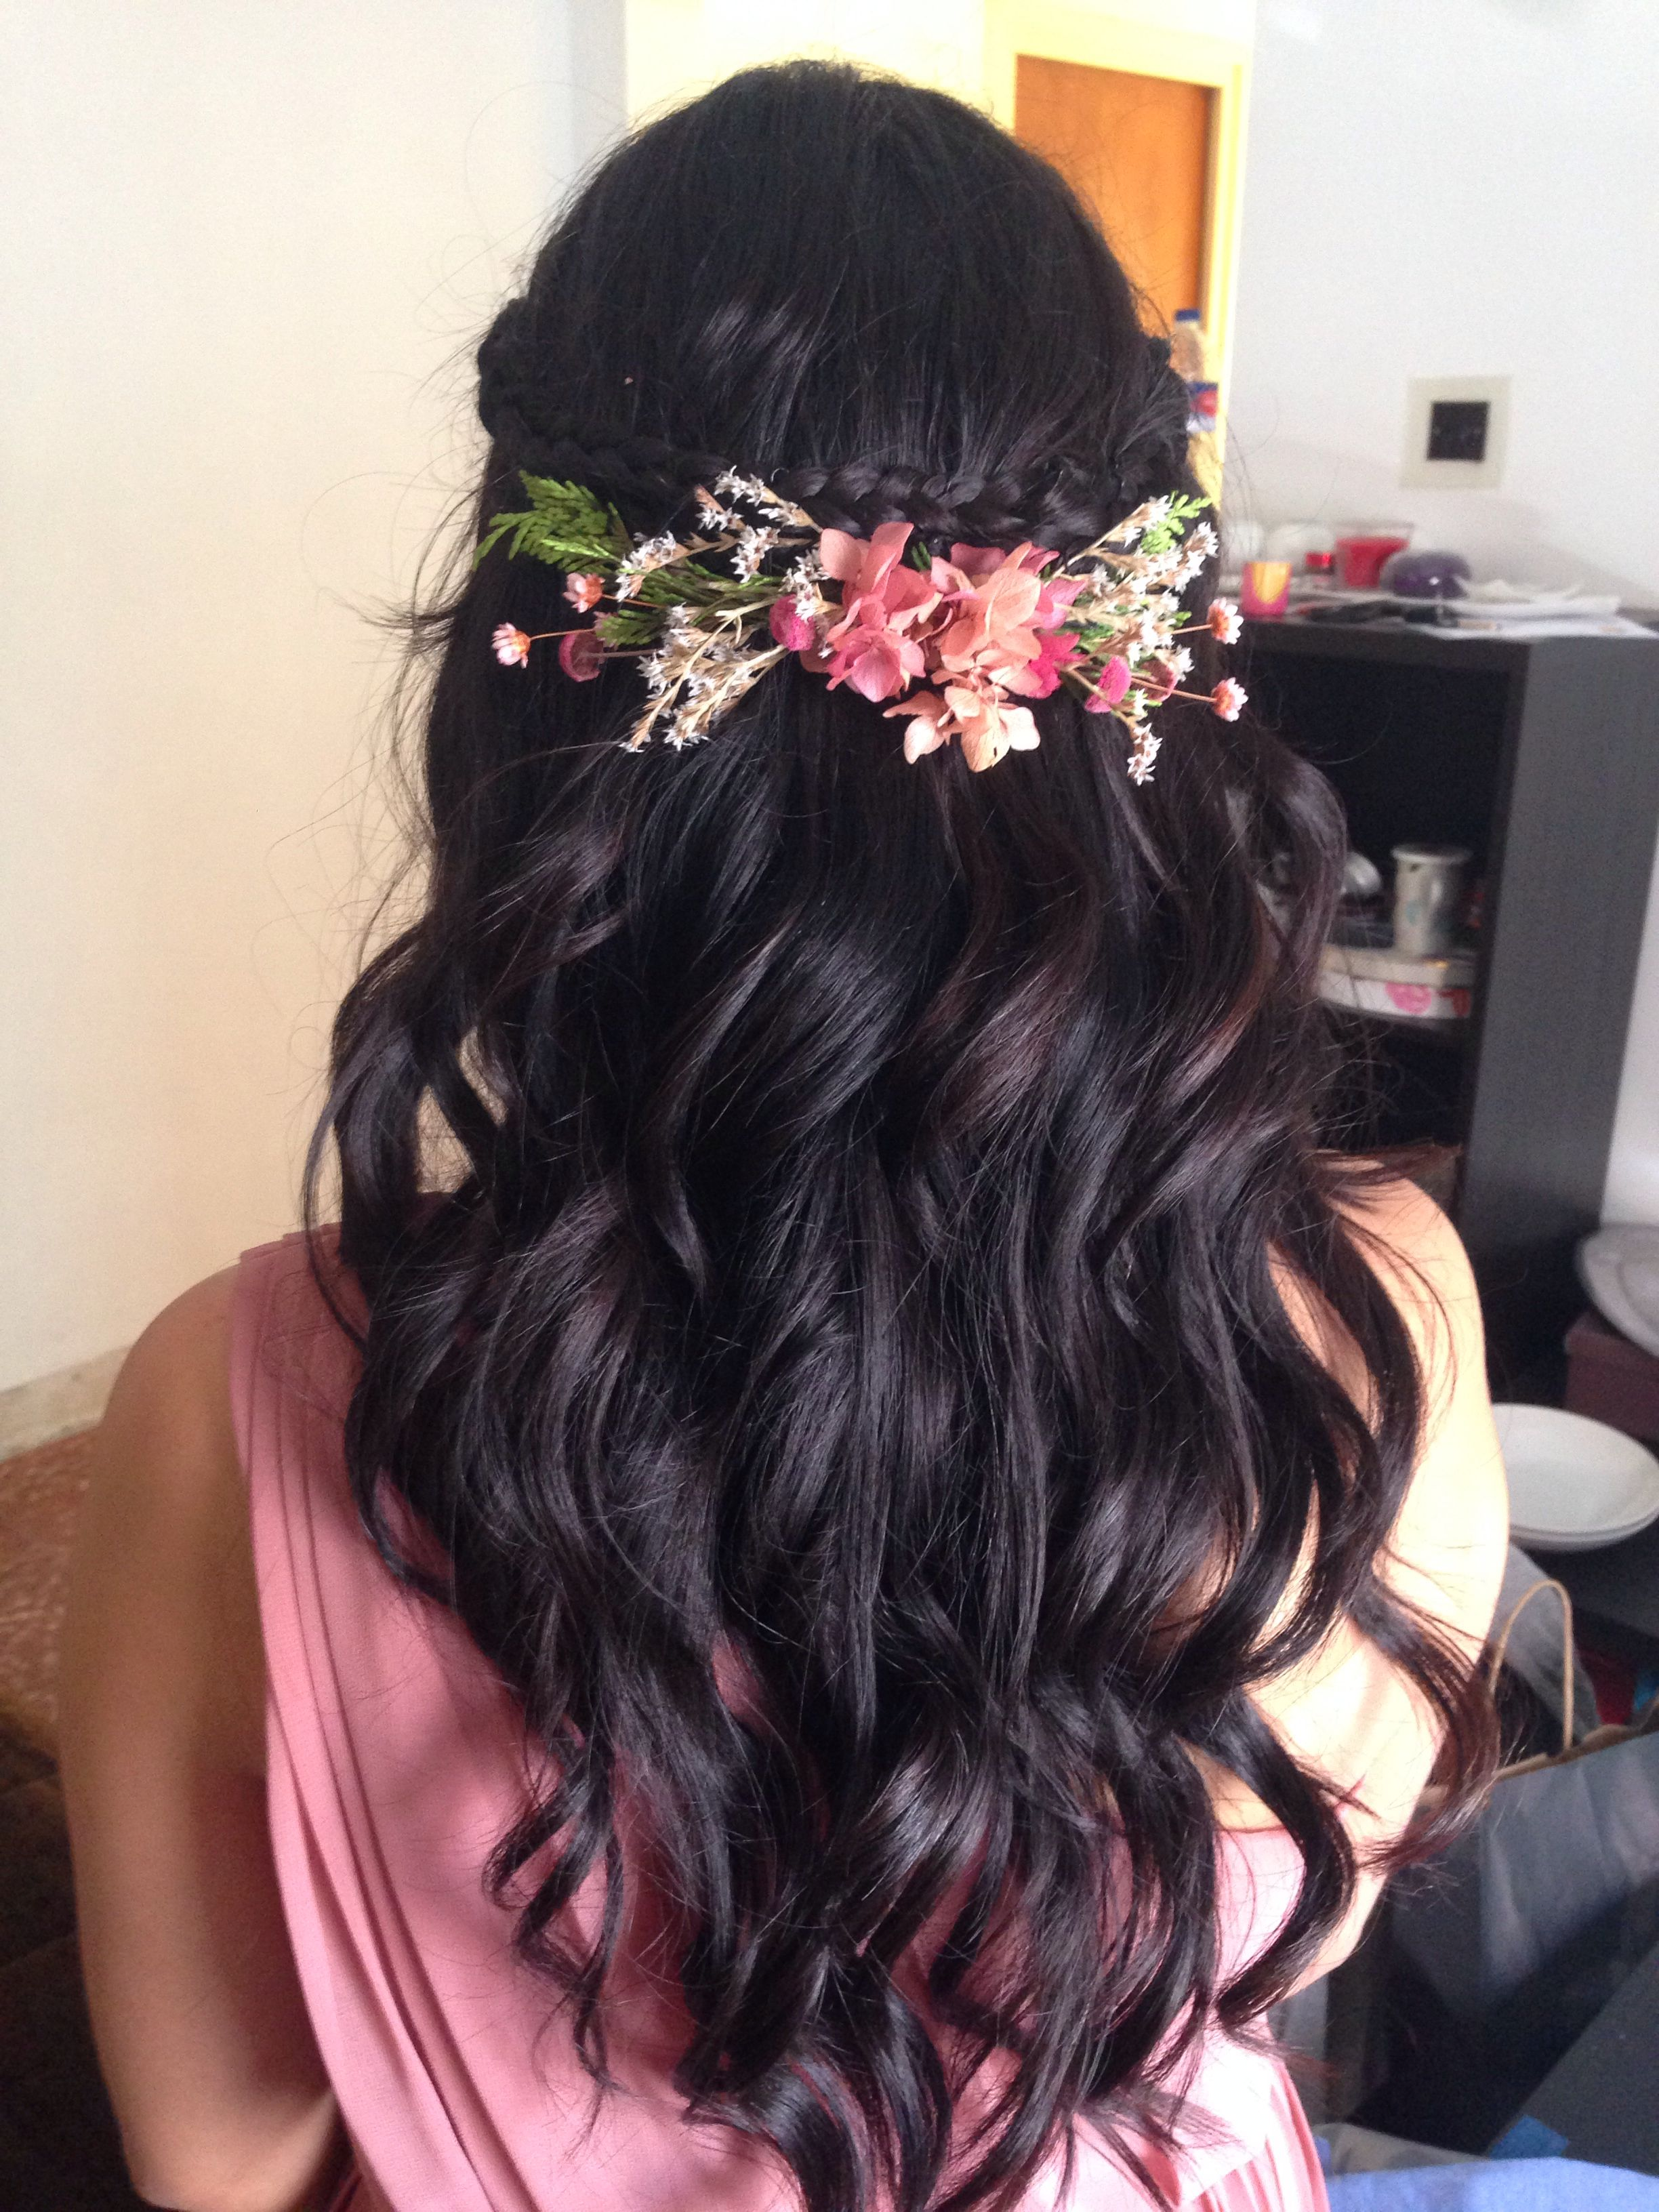 Curly open hair adorned with floral hair clip